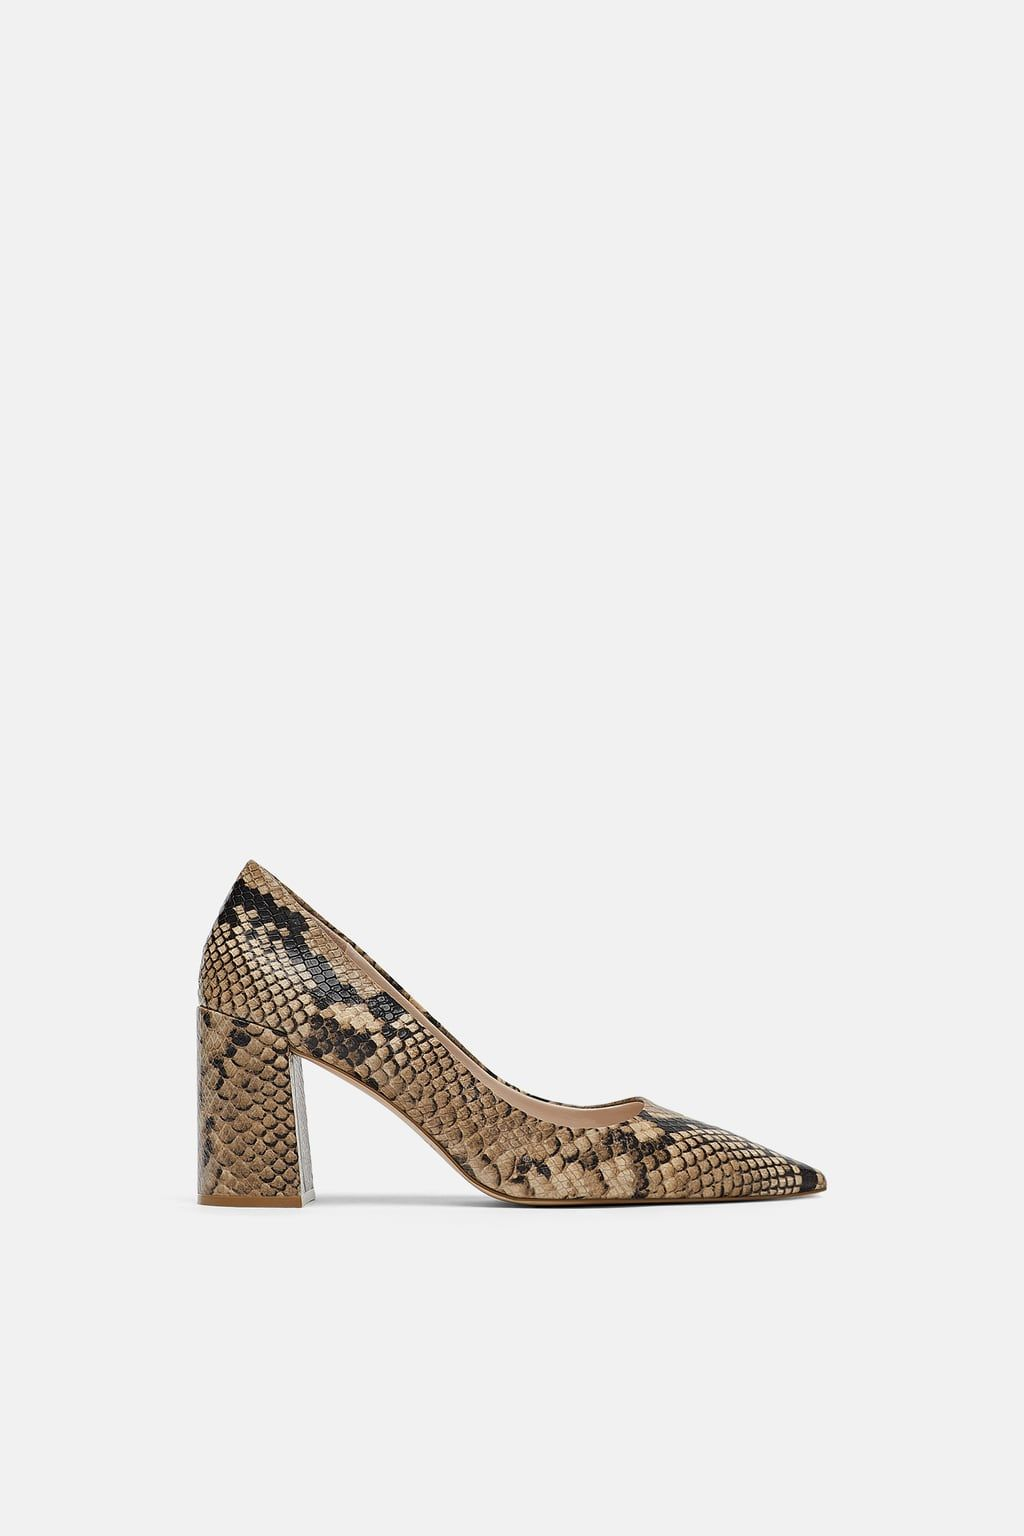 ead124702f8 Image 2 of ANIMAL PRINT LEATHER HIGH HEELED SHOES from Zara ...